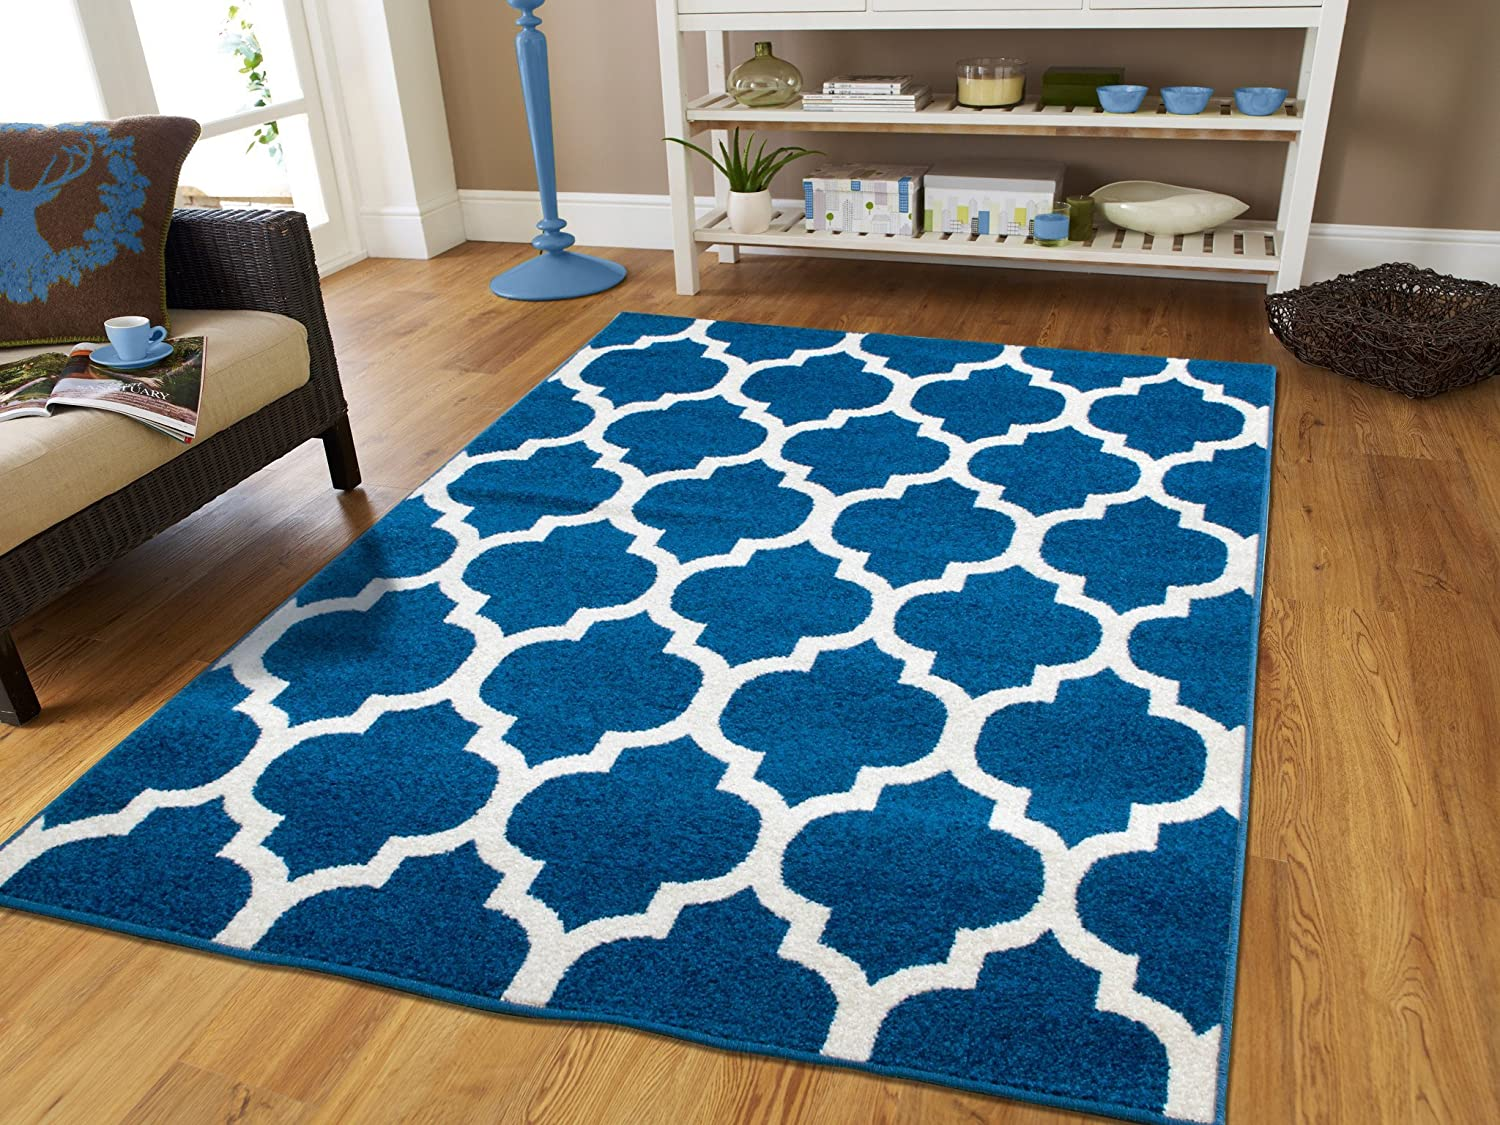 Amazon.com: New Fashion Luxury Morrocan Trellis Rugs Blue And White Rugs  With Lines Blues Rugs For Dining Room 8x10 Soft Rugs For Bedrooms Large Rugs  For ...